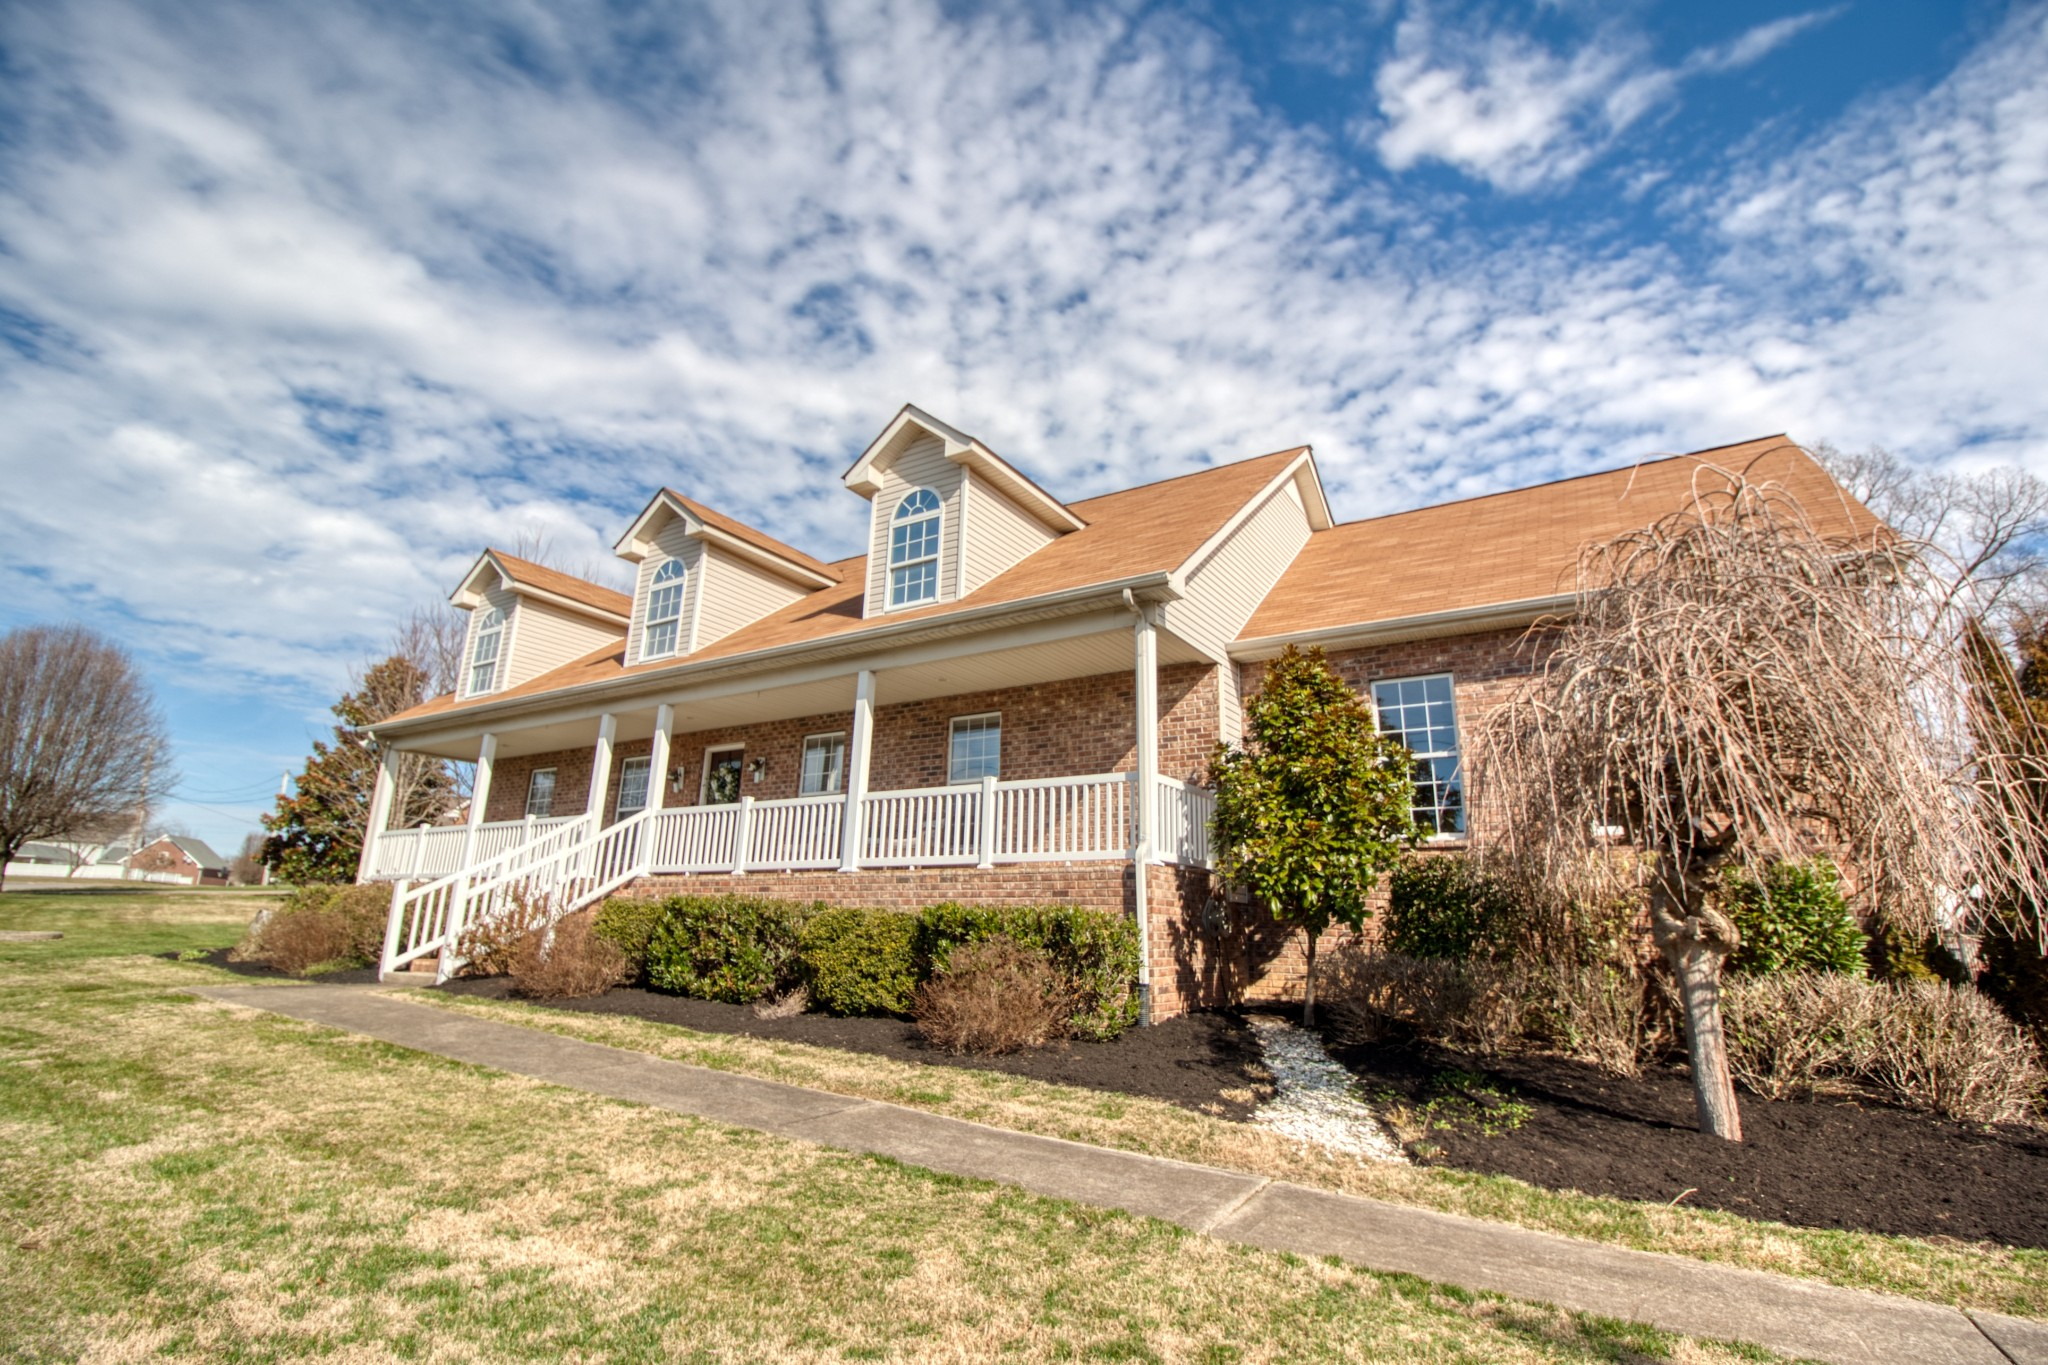 107 Terry Ln, Cottontown, TN 37048 - Cottontown, TN real estate listing